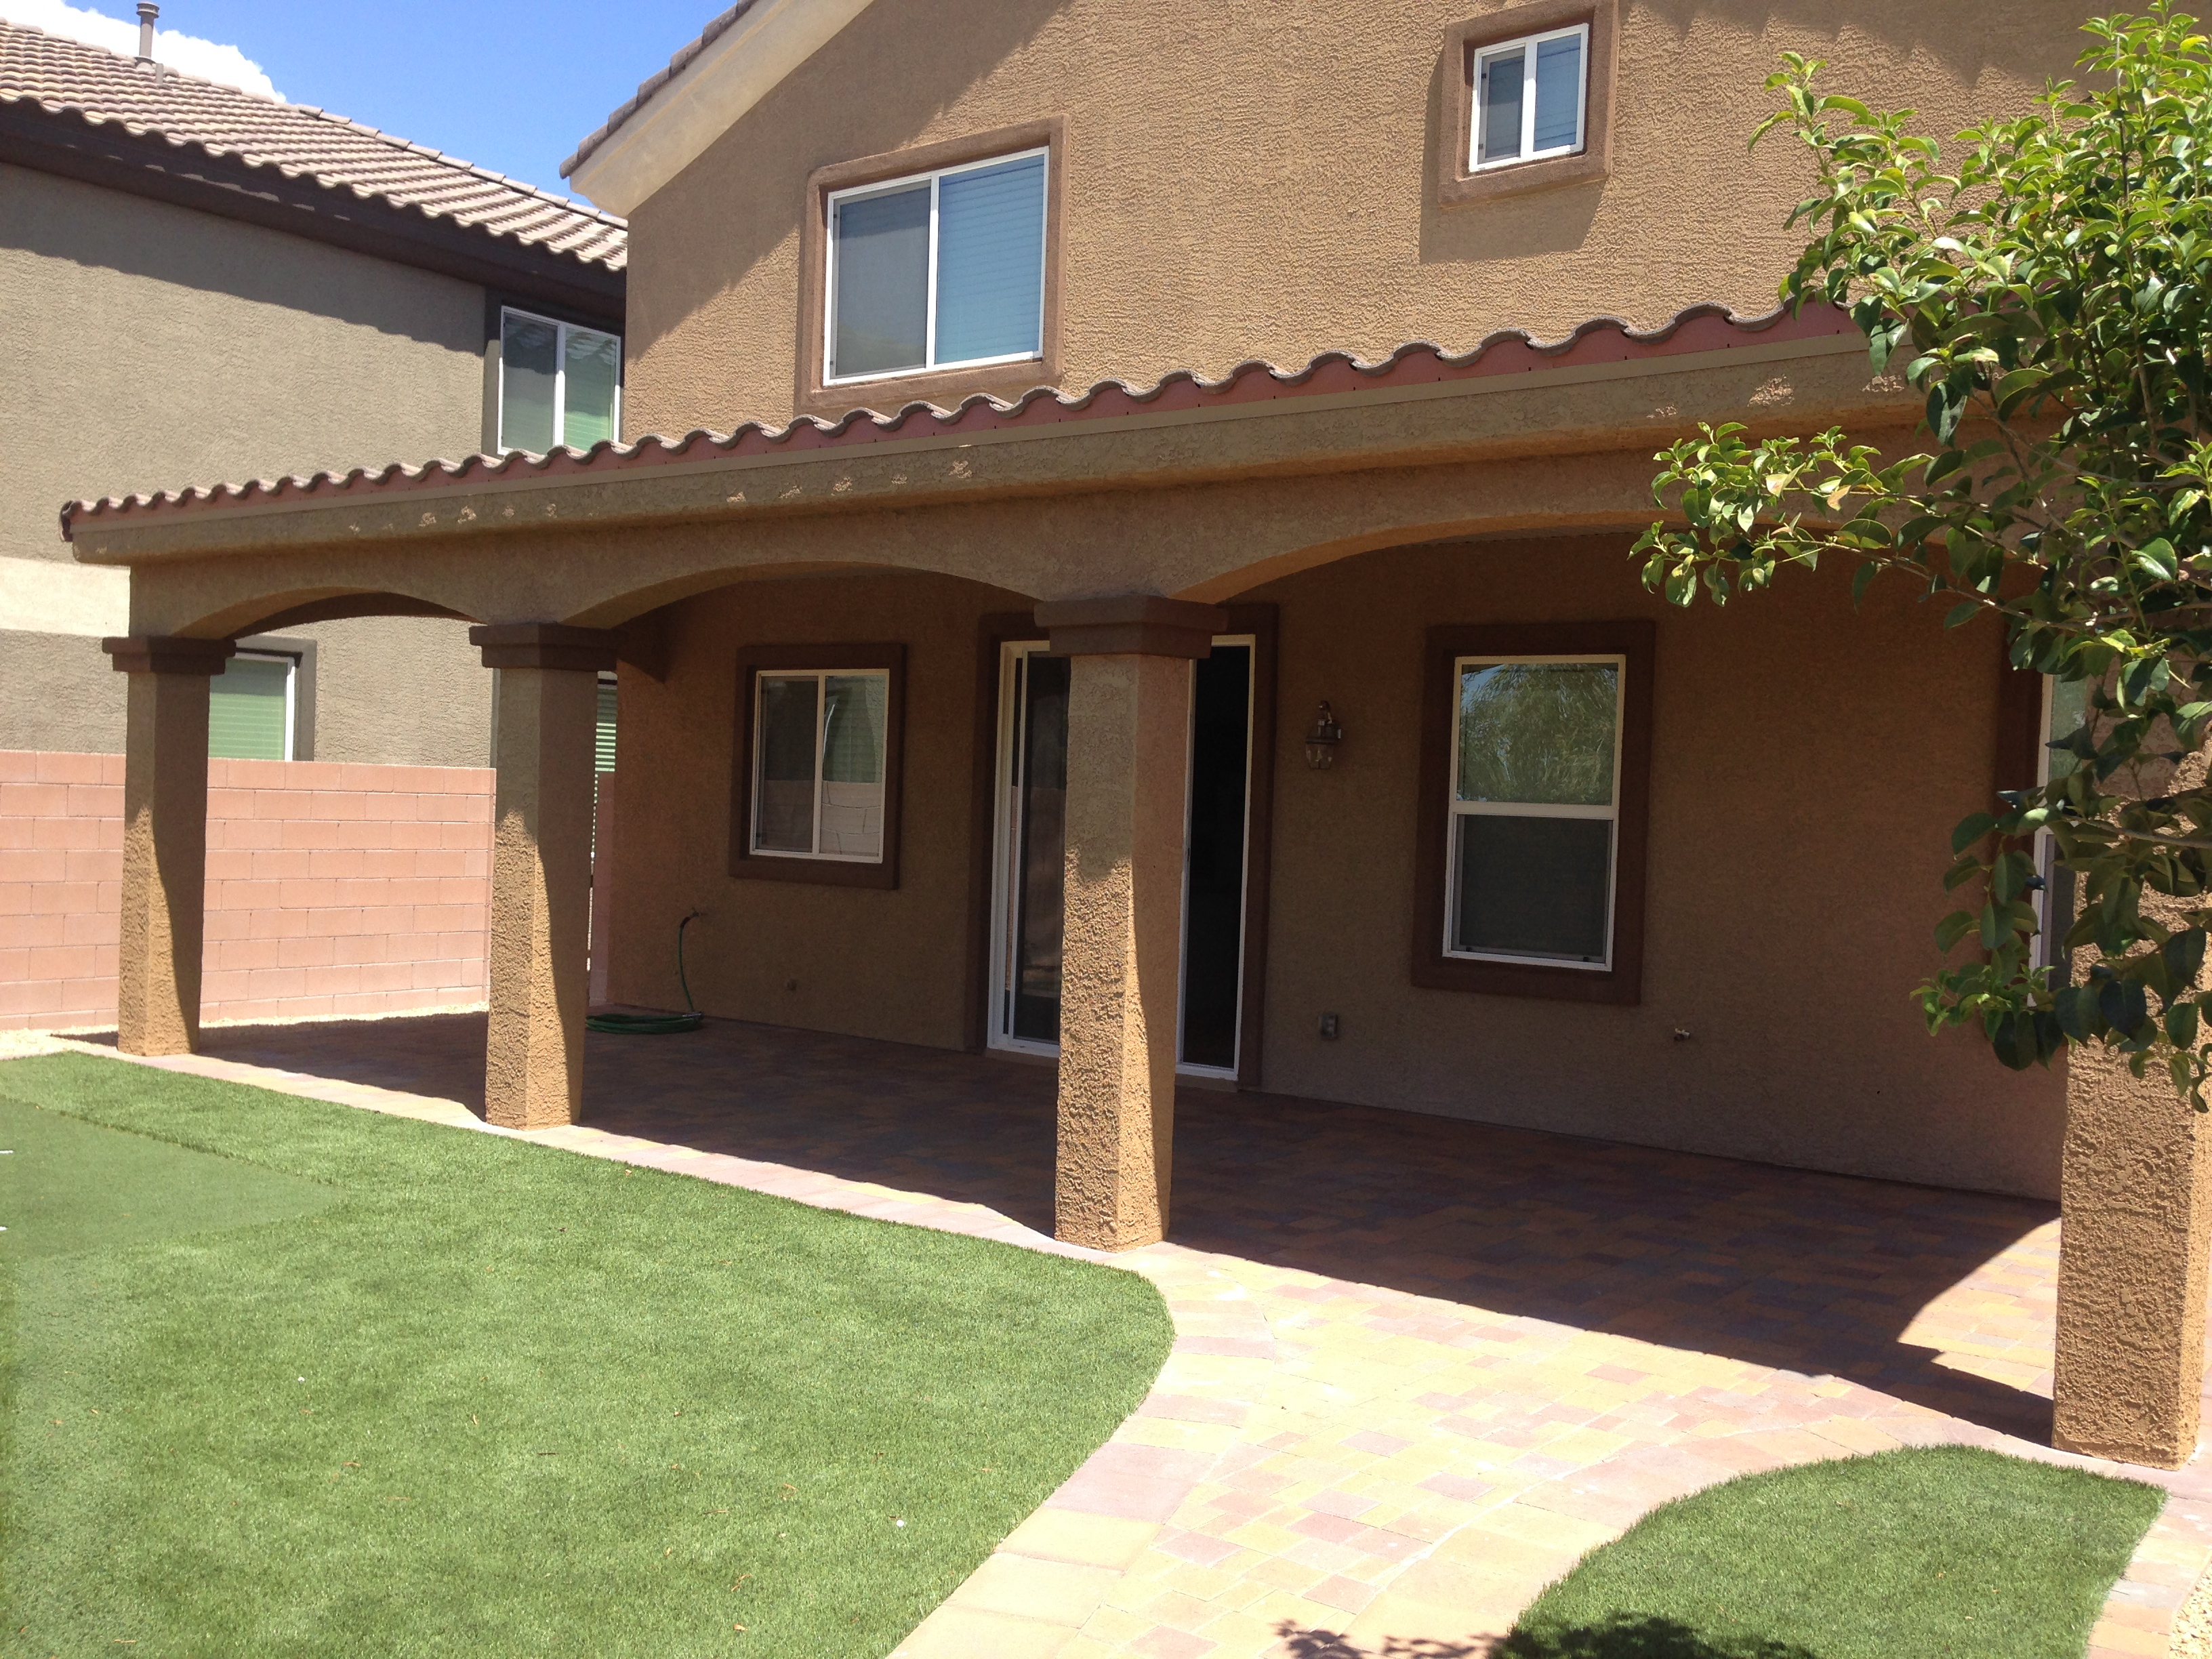 A custom patio cover with a tile roof and stucco finish.